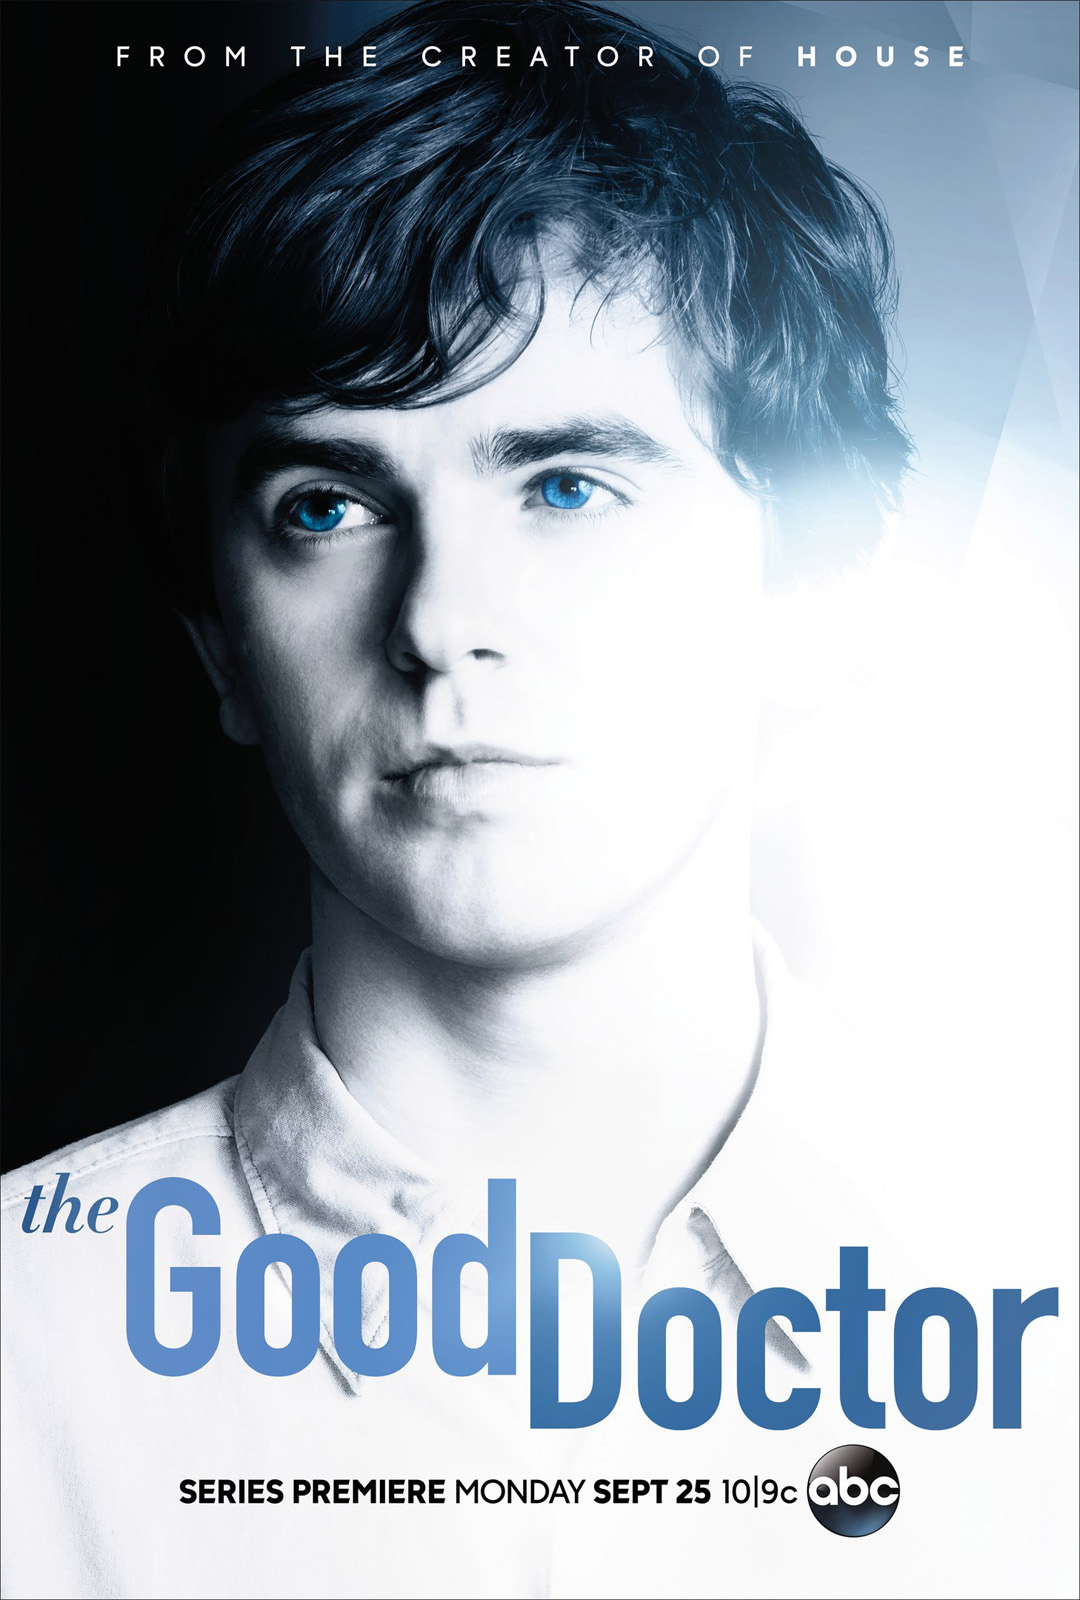 Assistir The Good Doctor O Bom Doutor 2018 Torrent Dublado 720p 1080p / 2ª temporada Online